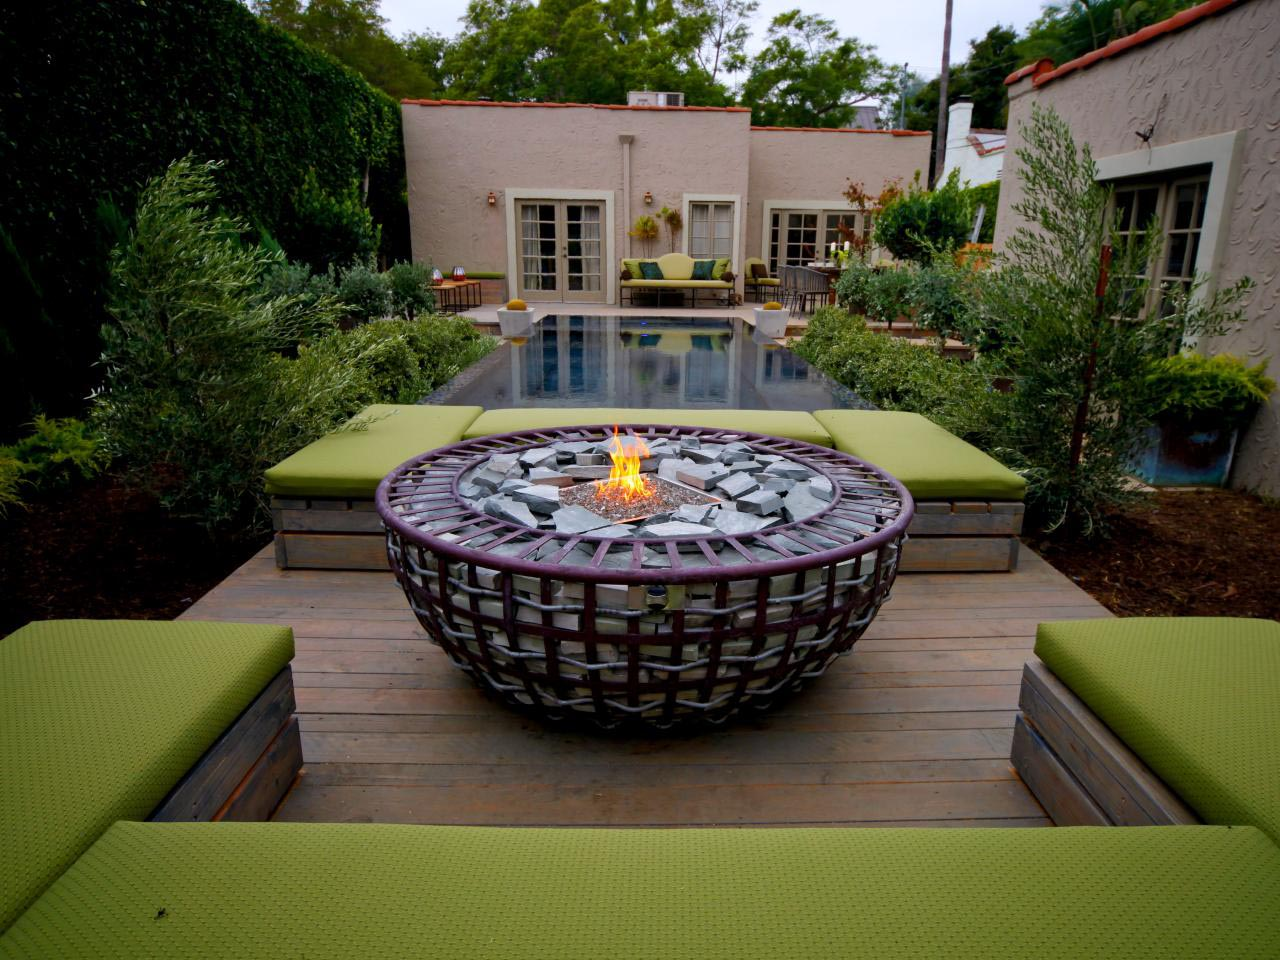 Simple backyard fire pit ideas fire pit design ideas for Small deck seating ideas